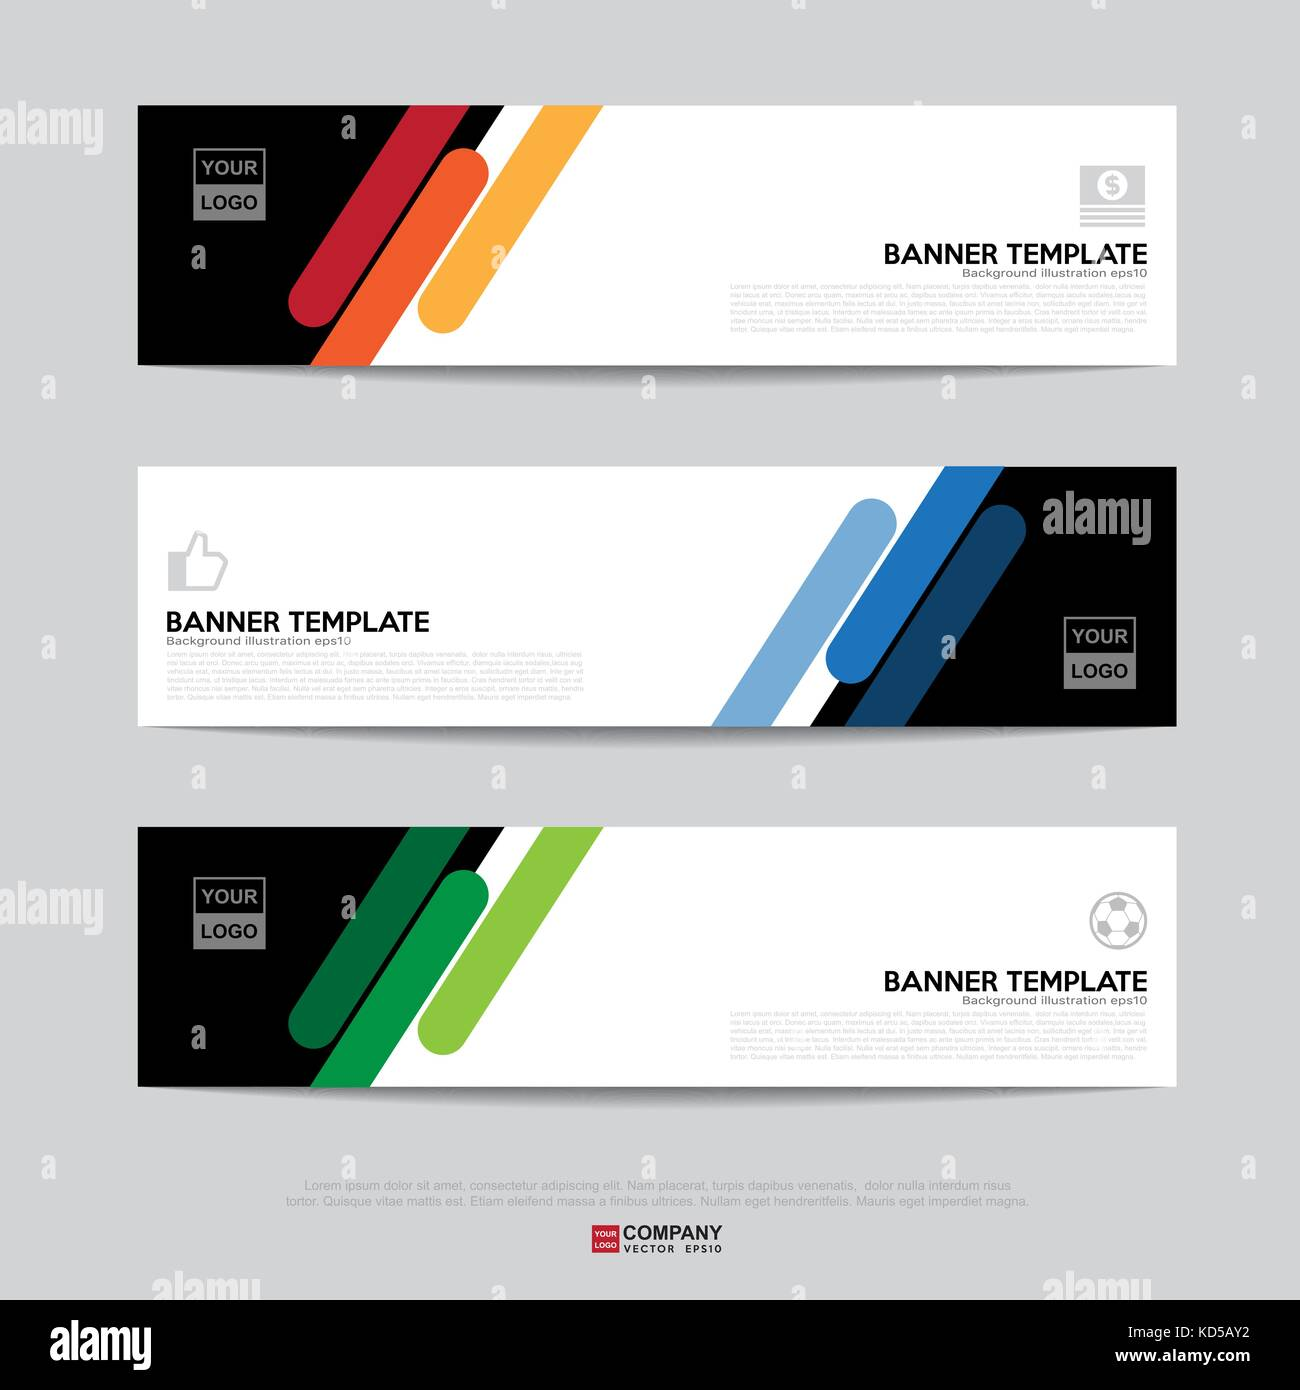 Design of flyers banners brochures and cards templatebanner design of flyers banners brochures and cards templatebanner design for business presentationheader templatebanner for web template accmission Gallery